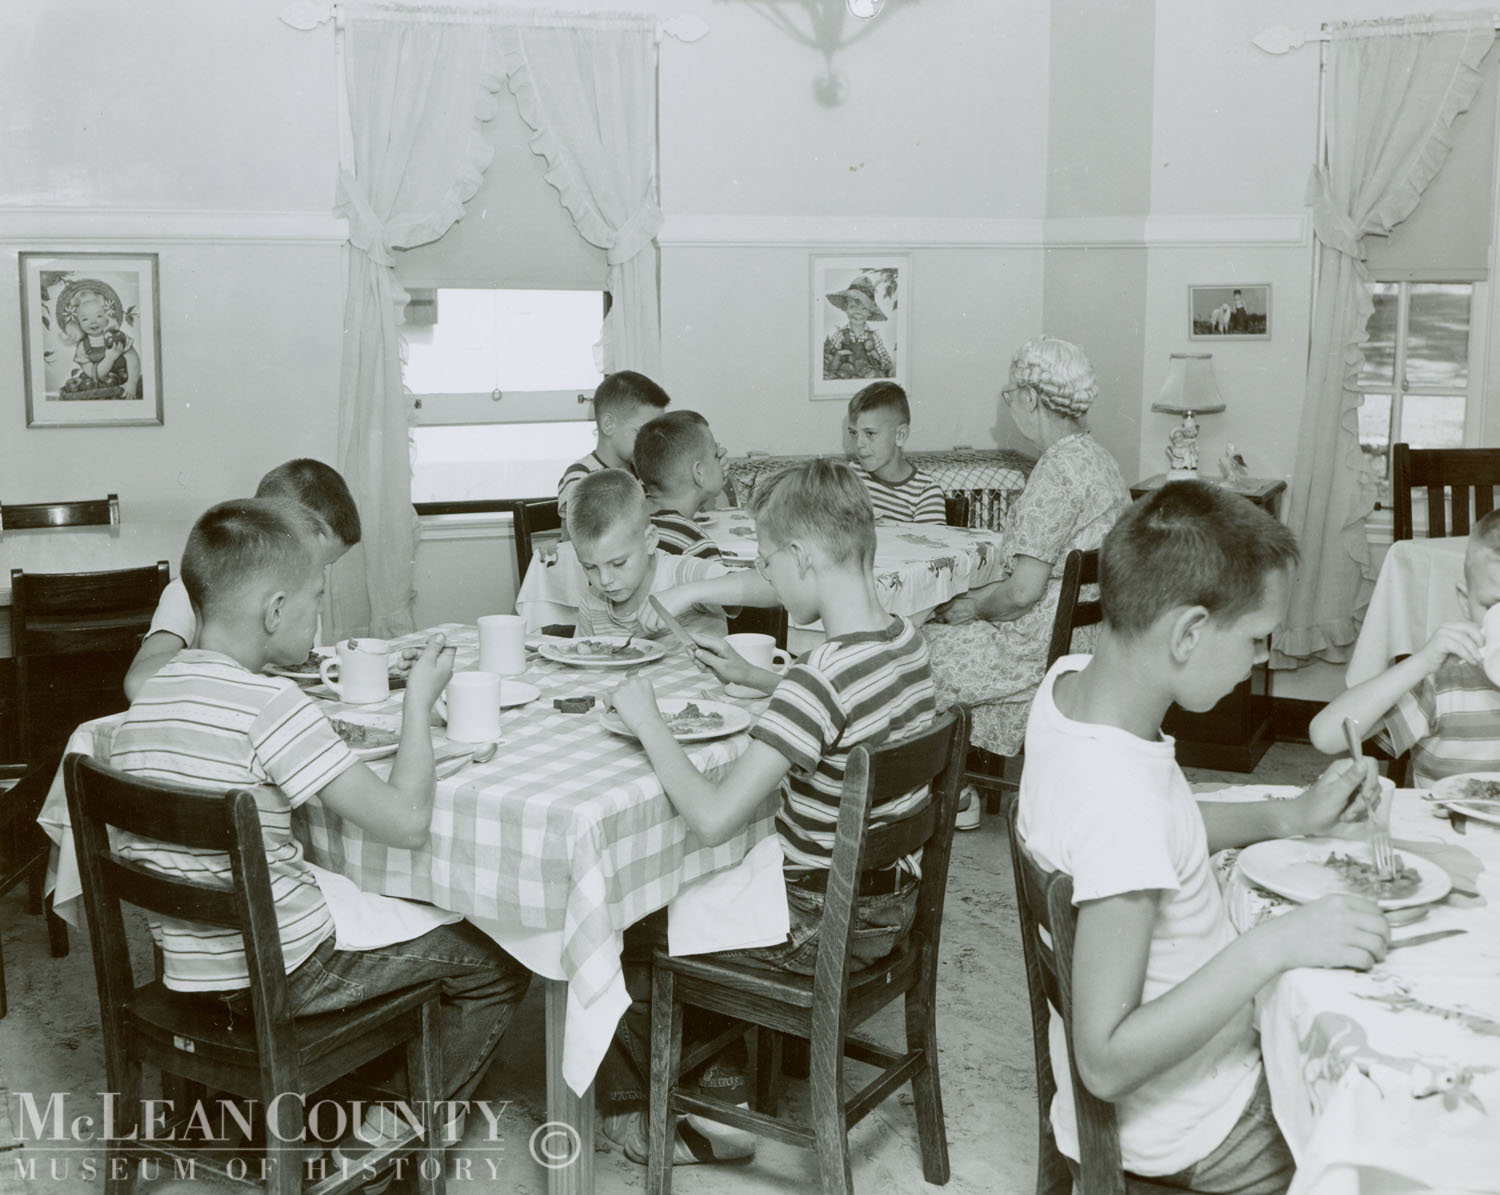 Illinois Soldiers' and Sailors' Children's School.  Betsy Ross Cottage, 1955